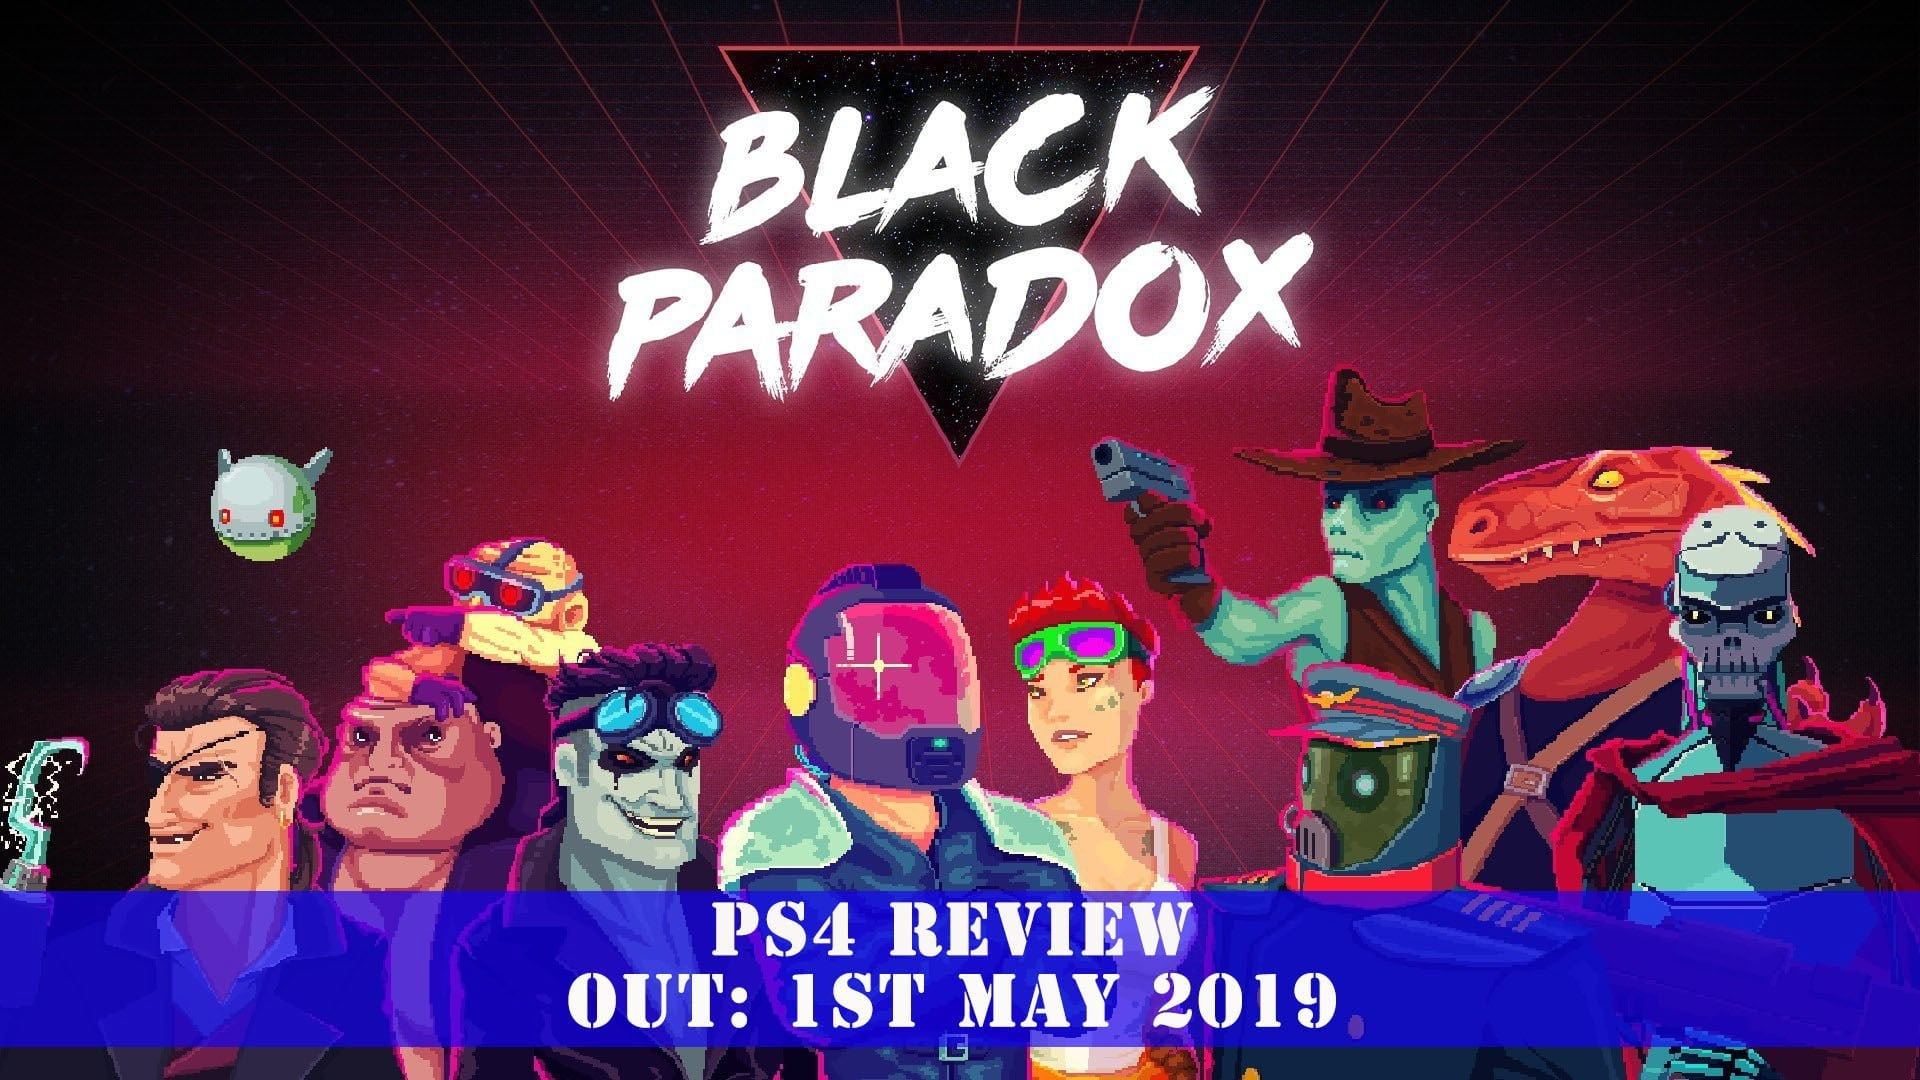 Black Paradox (PS4) Review